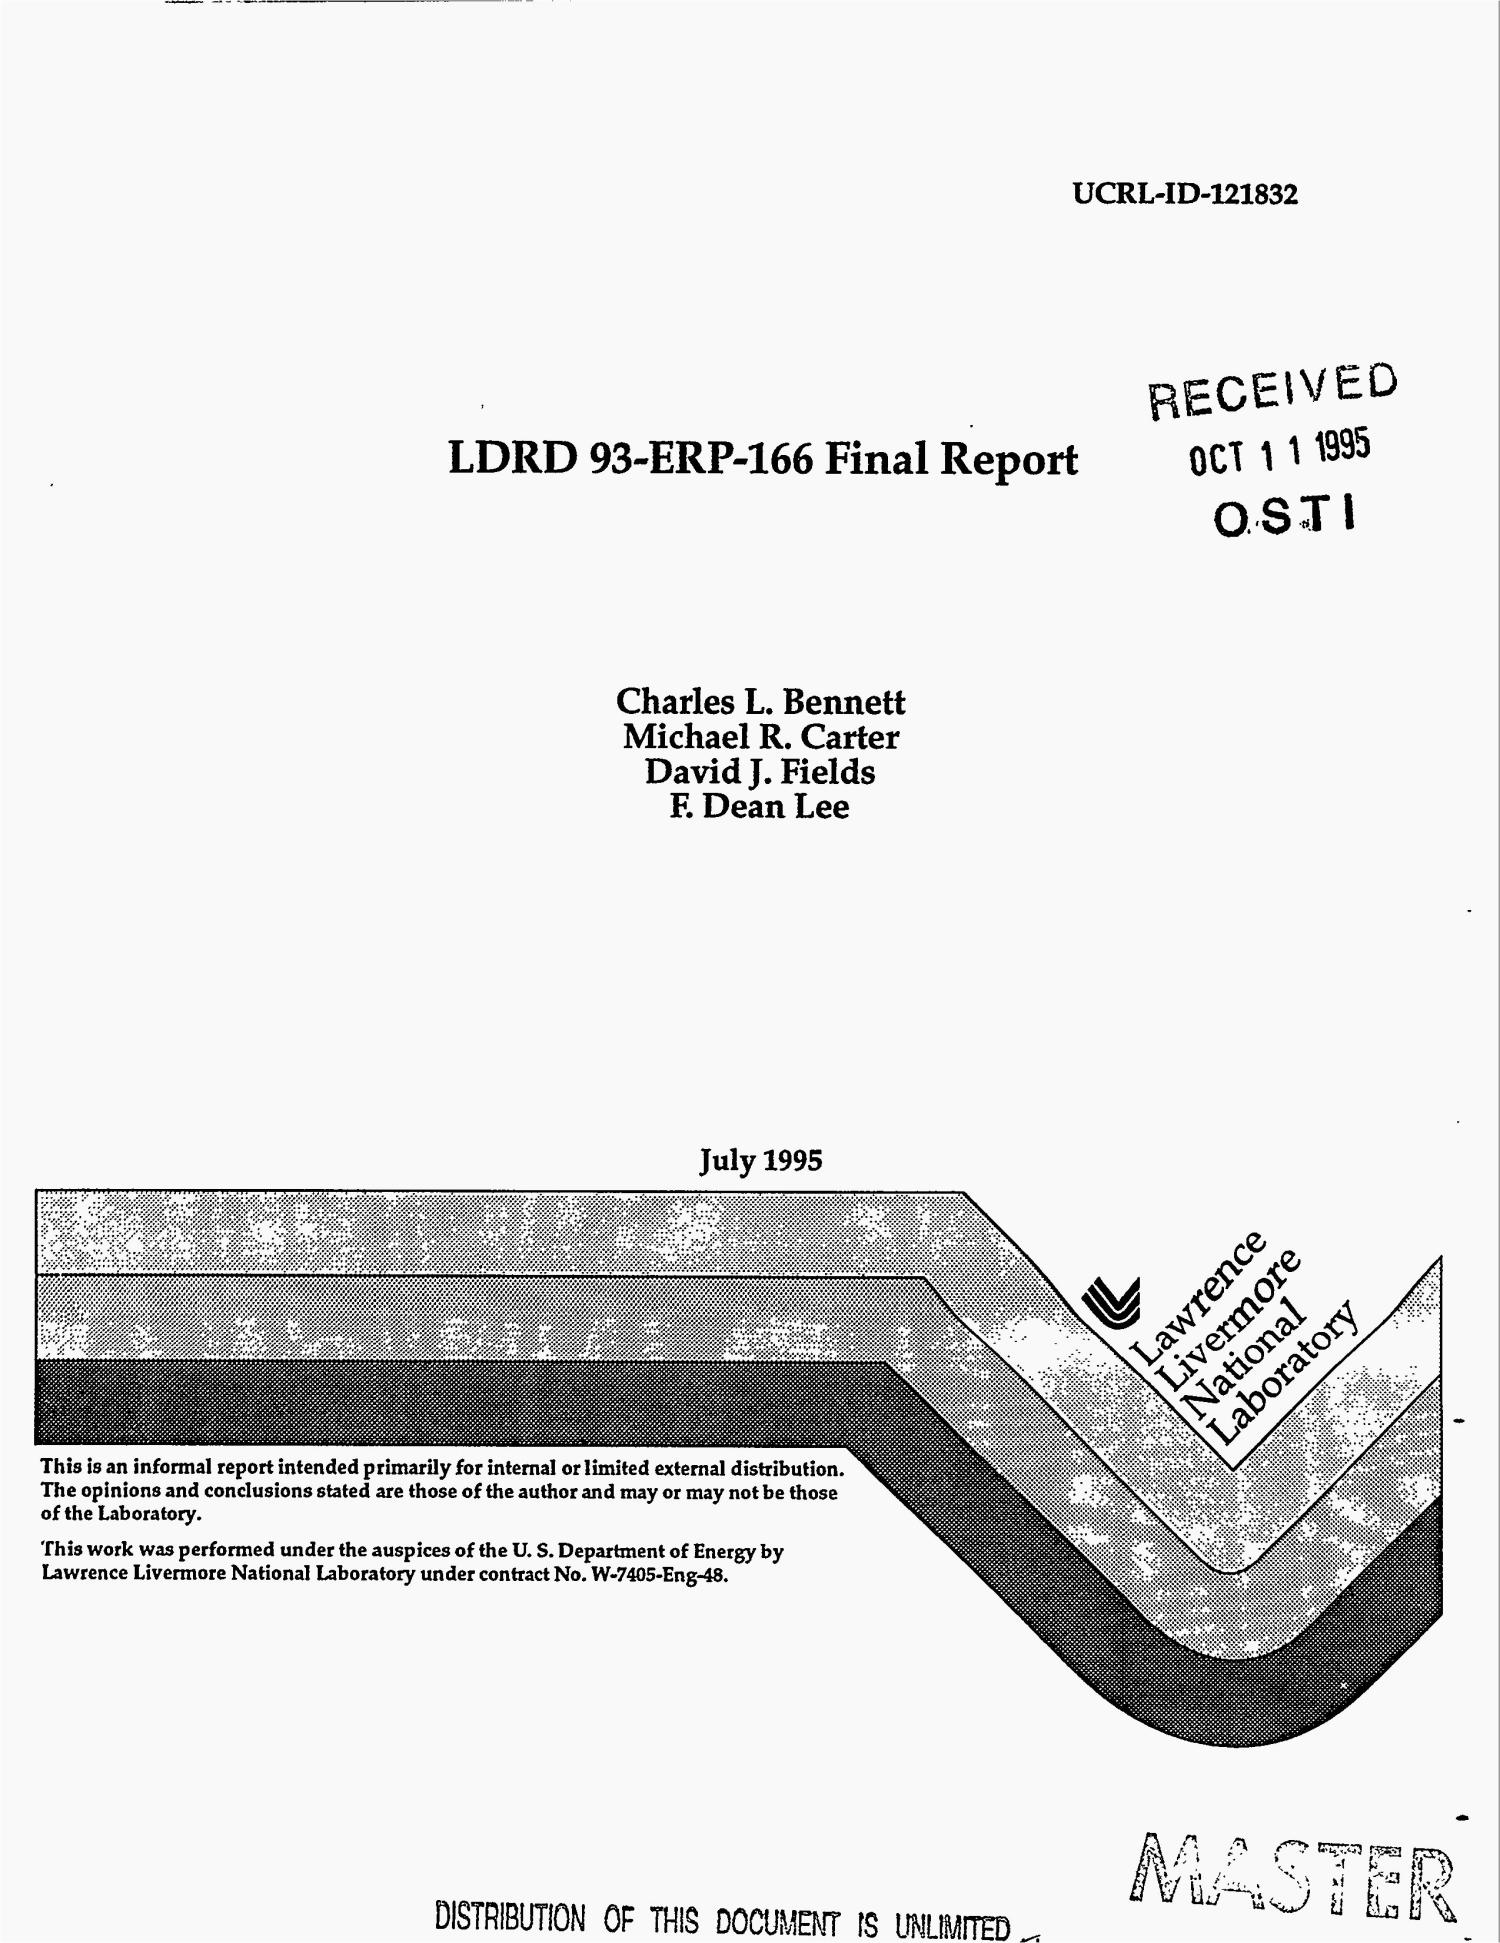 LDRD 93-ERP-166 Final report                                                                                                      [Sequence #]: 1 of 13